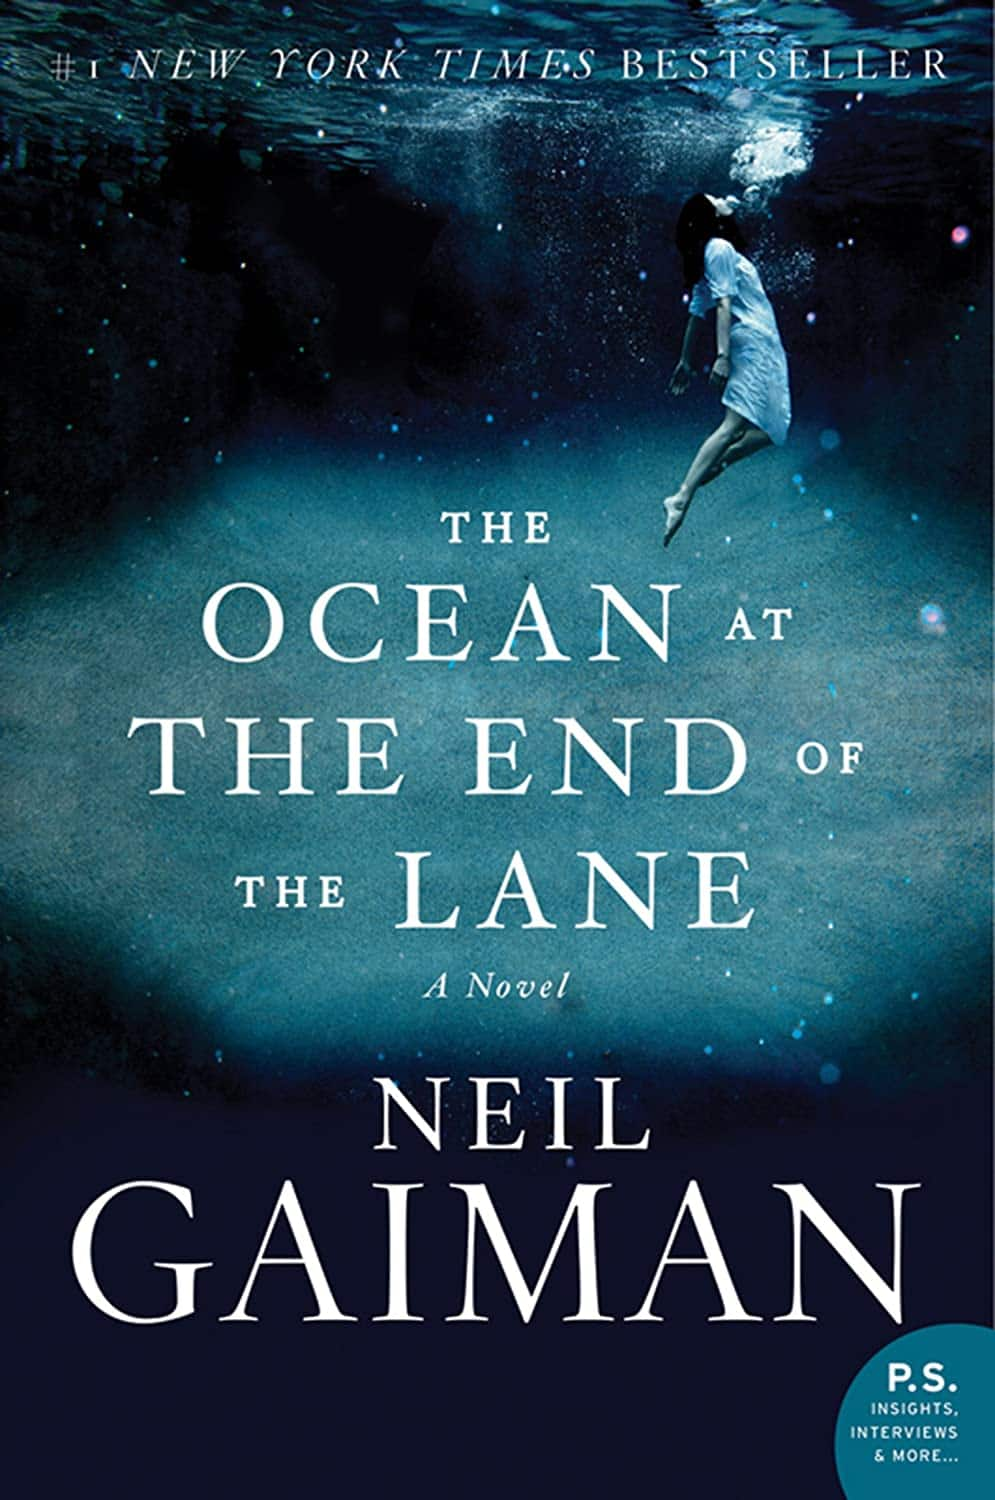 Neil Gaiman: The Ocean at the End of the Lane: A Novel [Kindle Edition] $2.99 ~ Amazon